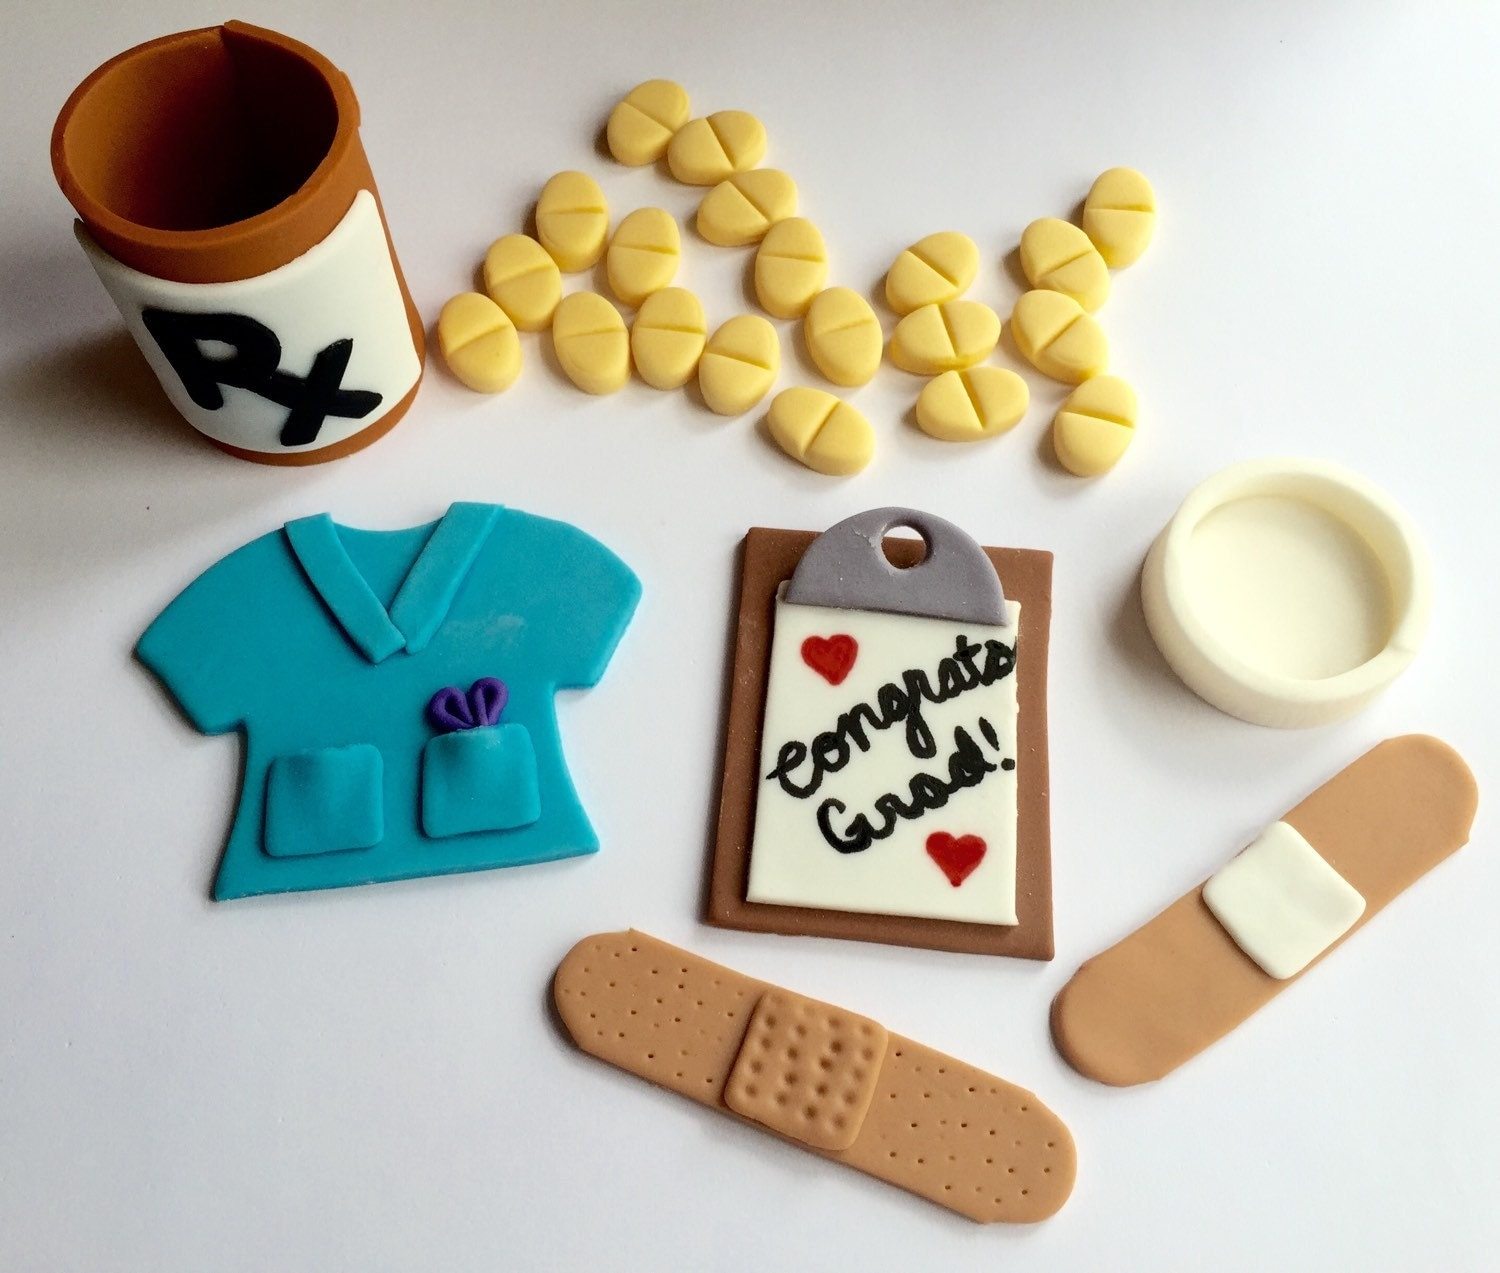 Cake Decorating Medical Theme : Fondant Nurse Doctor Medical Cake Decorating Set